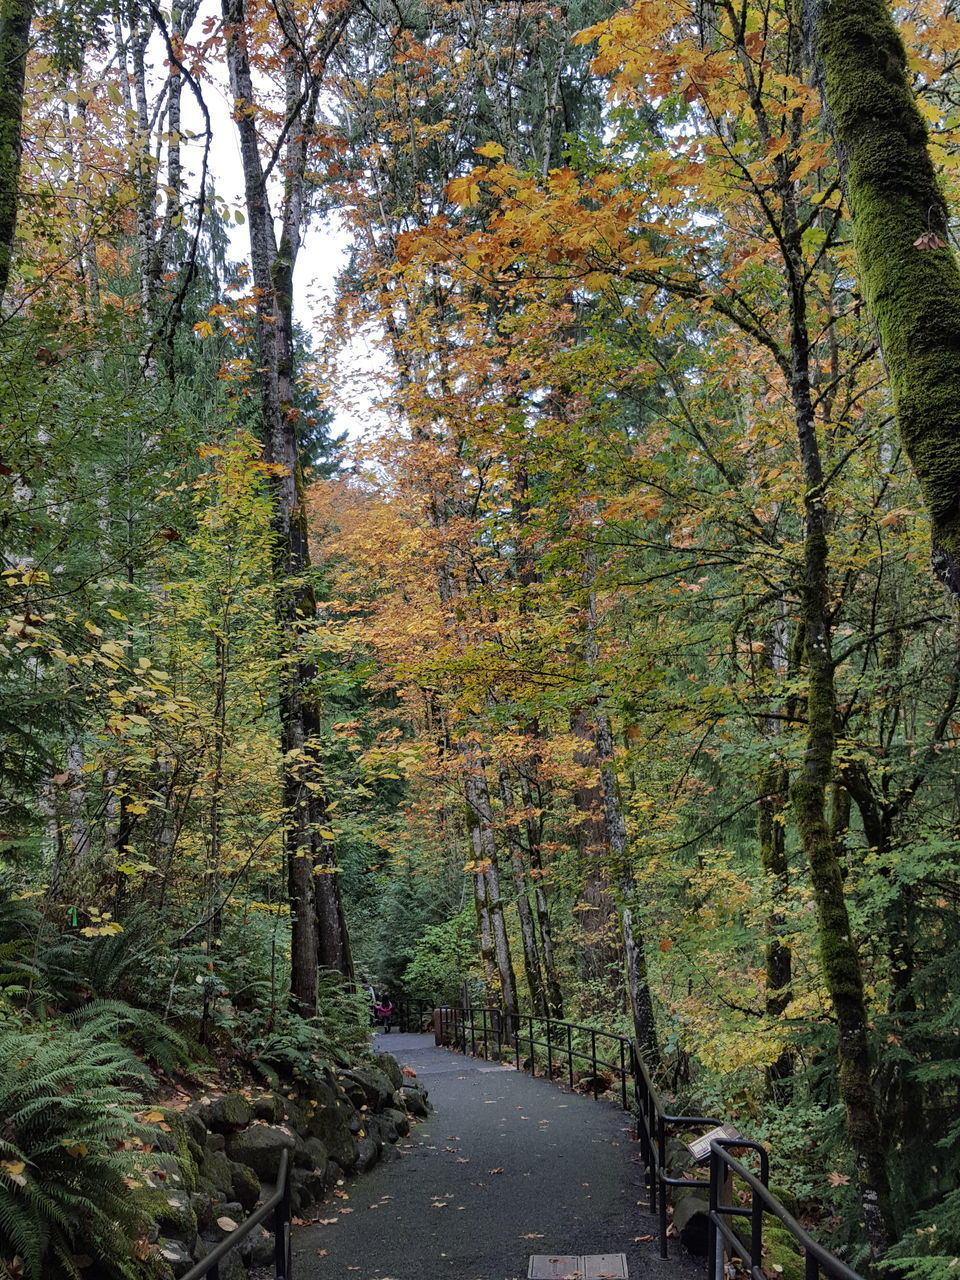 nature, autumn, tree, the way forward, tranquility, leaf, beauty in nature, scenics, tranquil scene, change, forest, day, no people, growth, outdoors, landscape